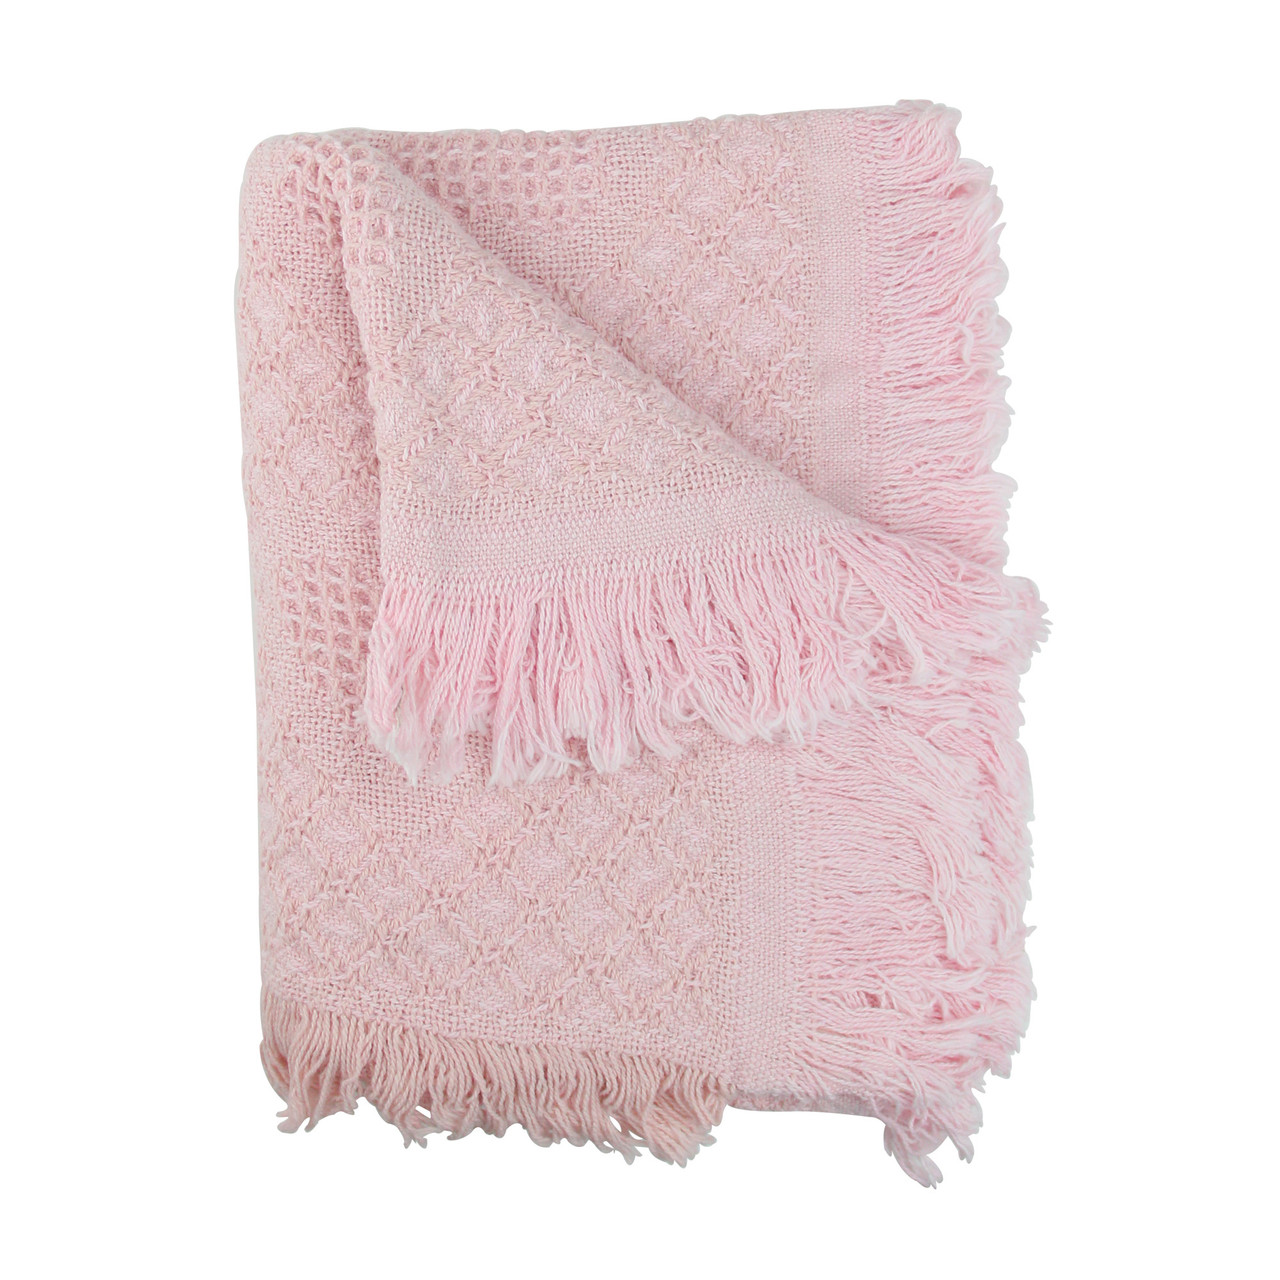 Pink Heart Honeycomb Cotton Baby Afghan Throw Blanket Christmas